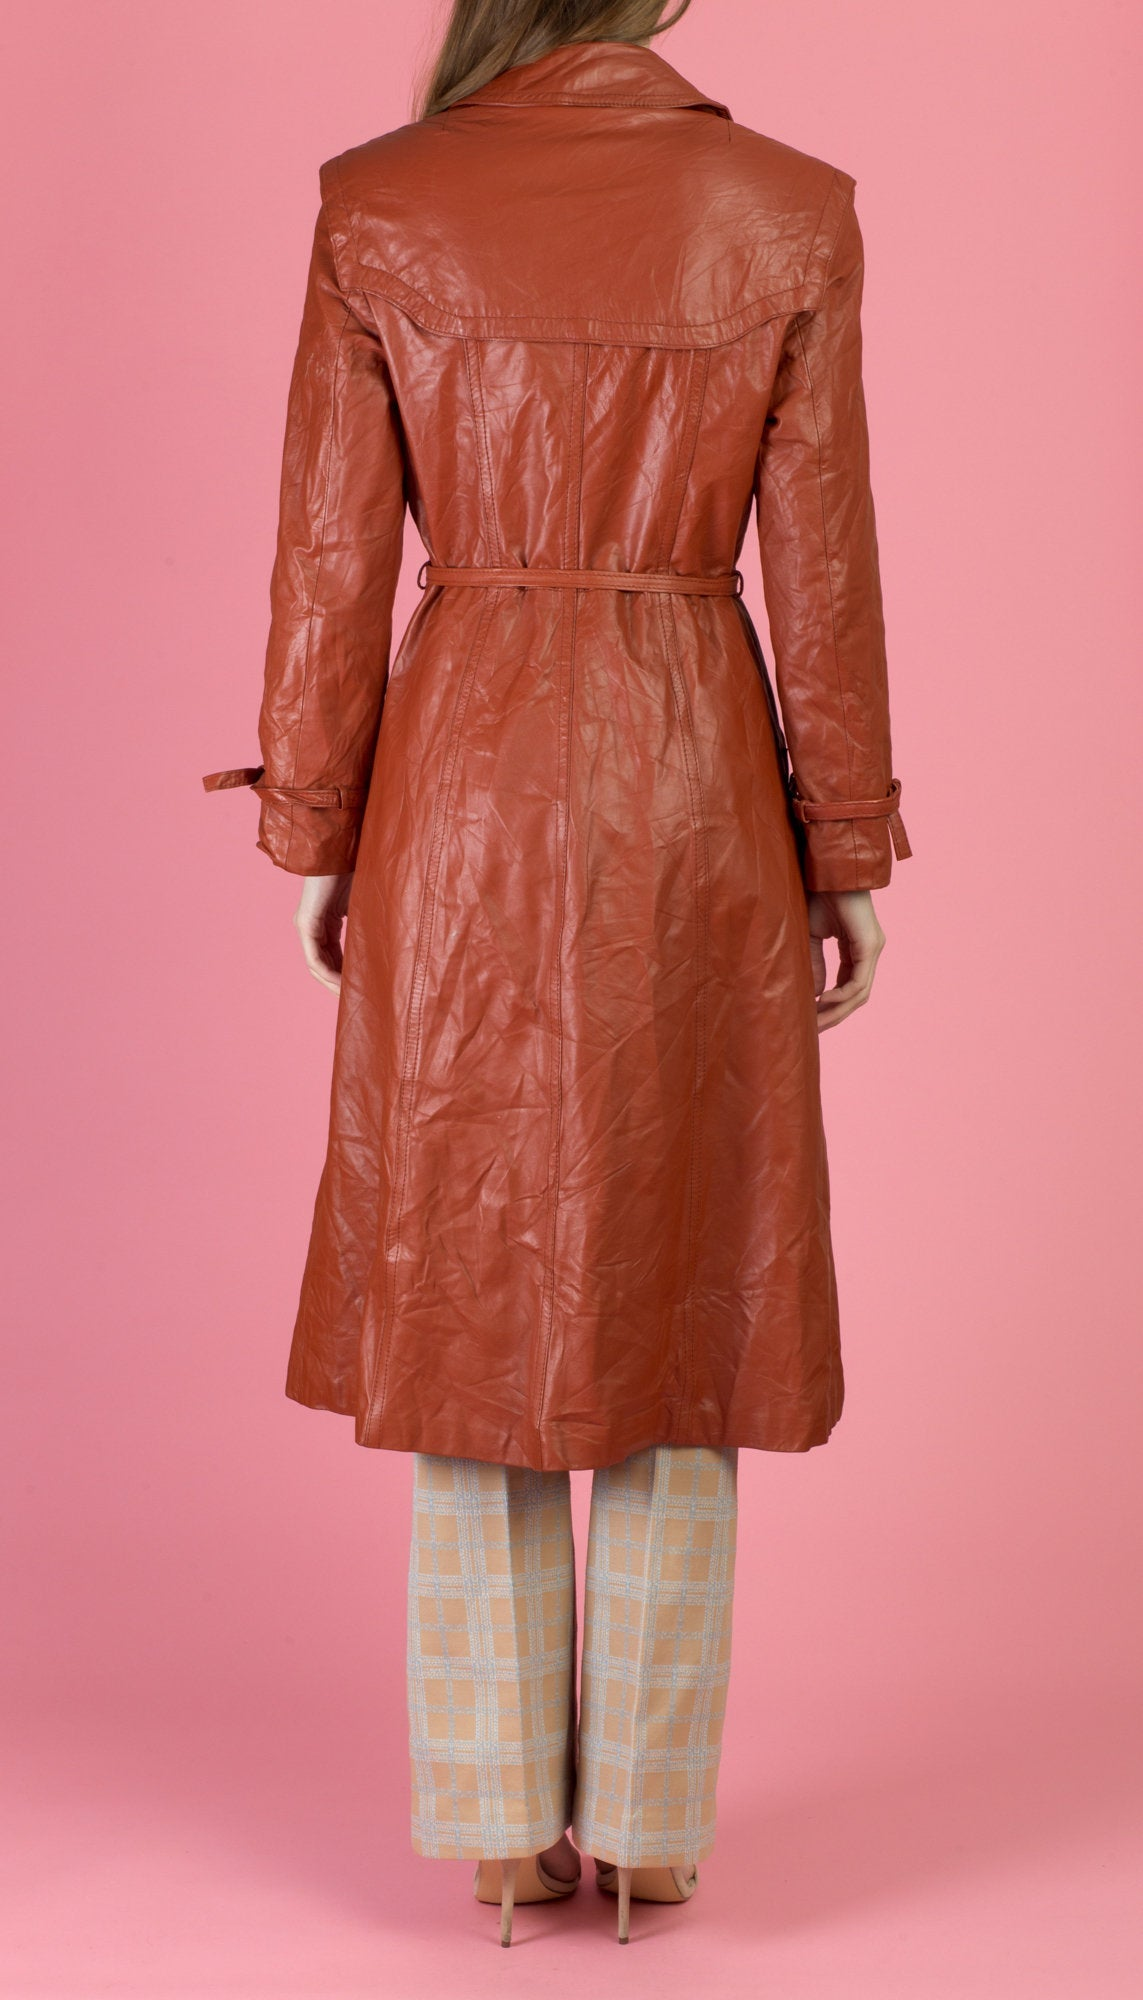 70s Boho Leather Trench Coat - Extra Small